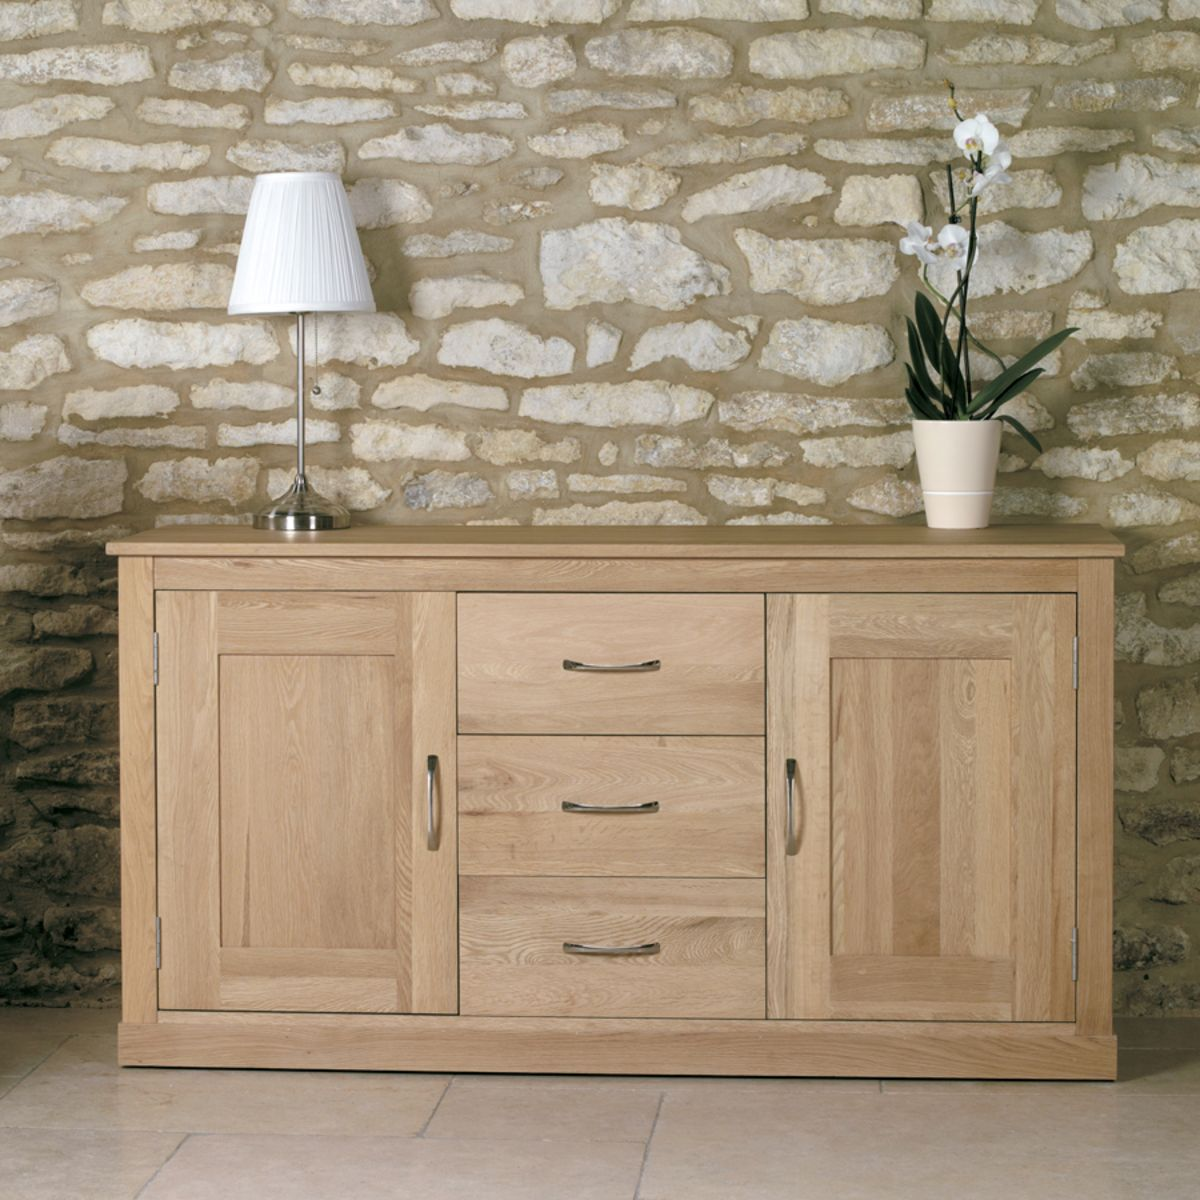 Mobel oak large sideboard wooden furniture store for Design sale mobel